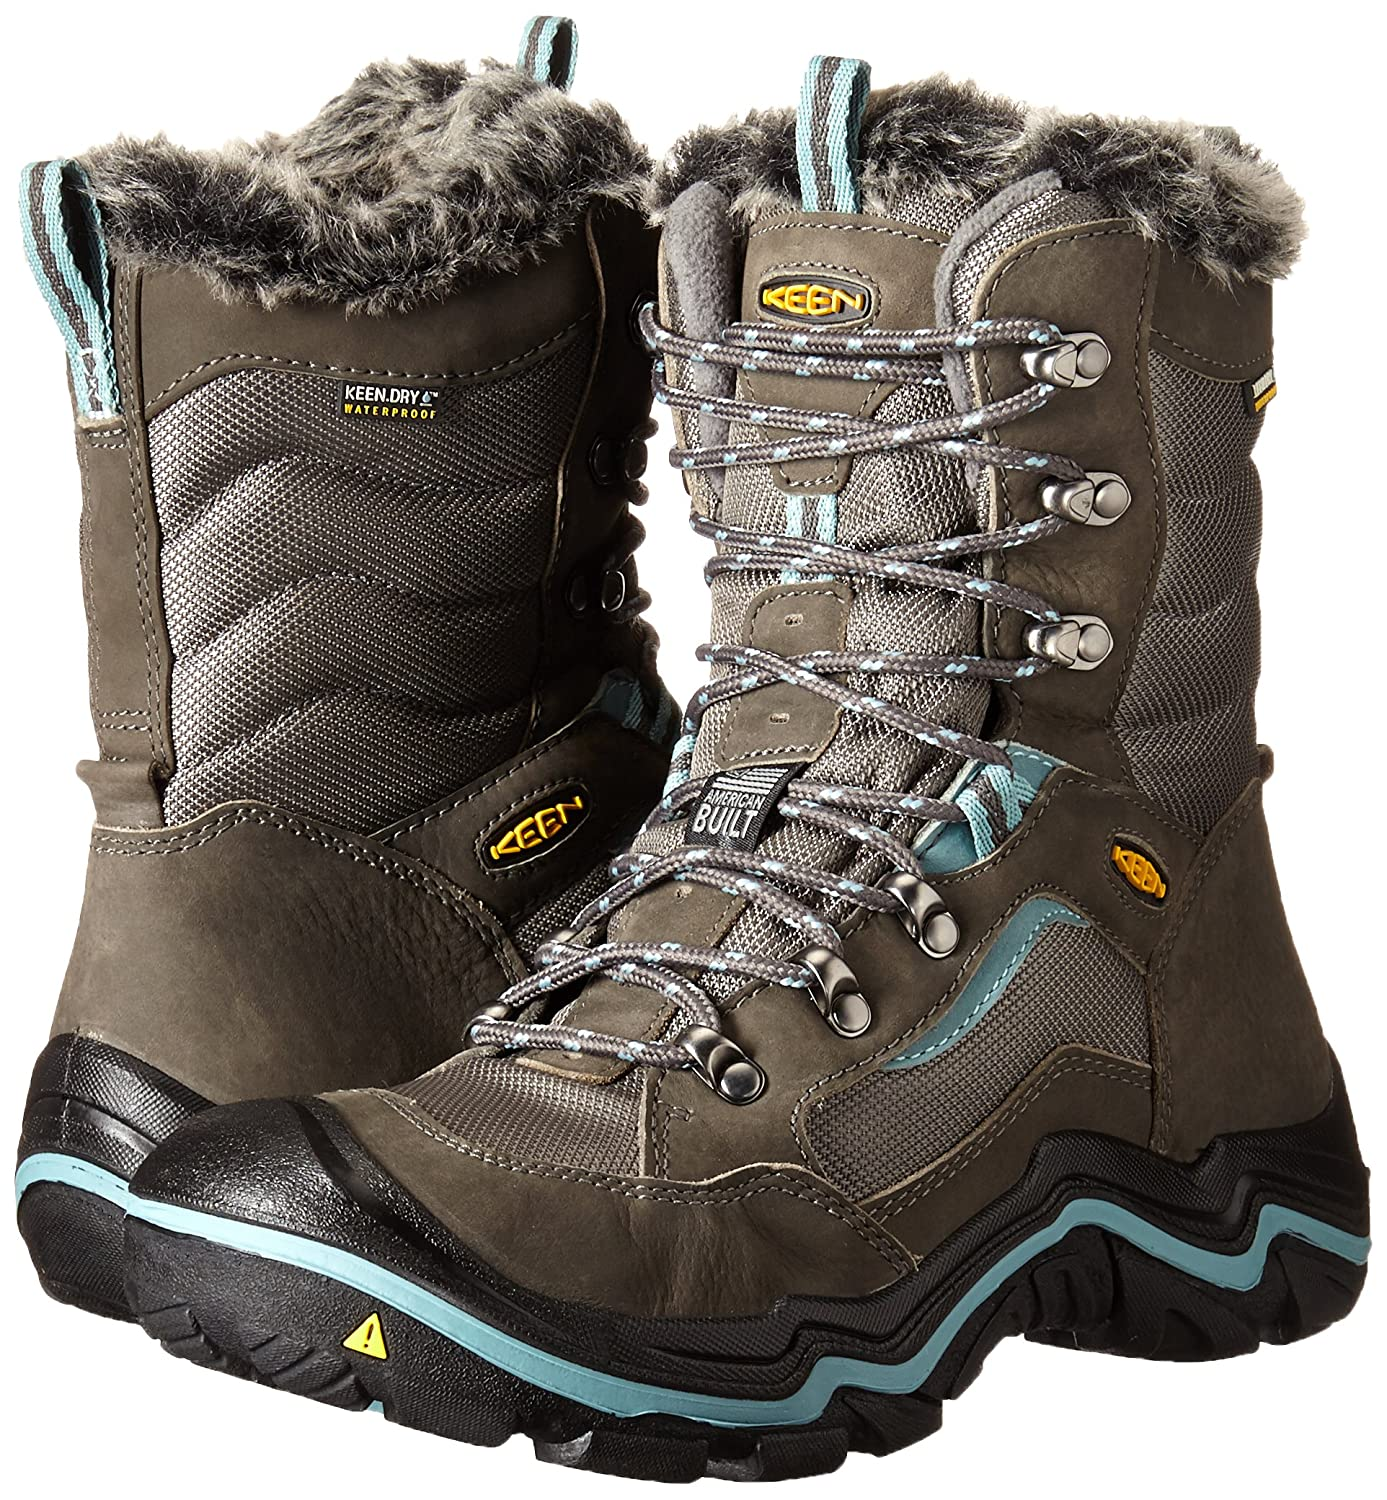 KEEN Women's Durand Polar Winter Boot B00RKJYE4W 7.5 B(M) US|Magnet/Mineral Blue